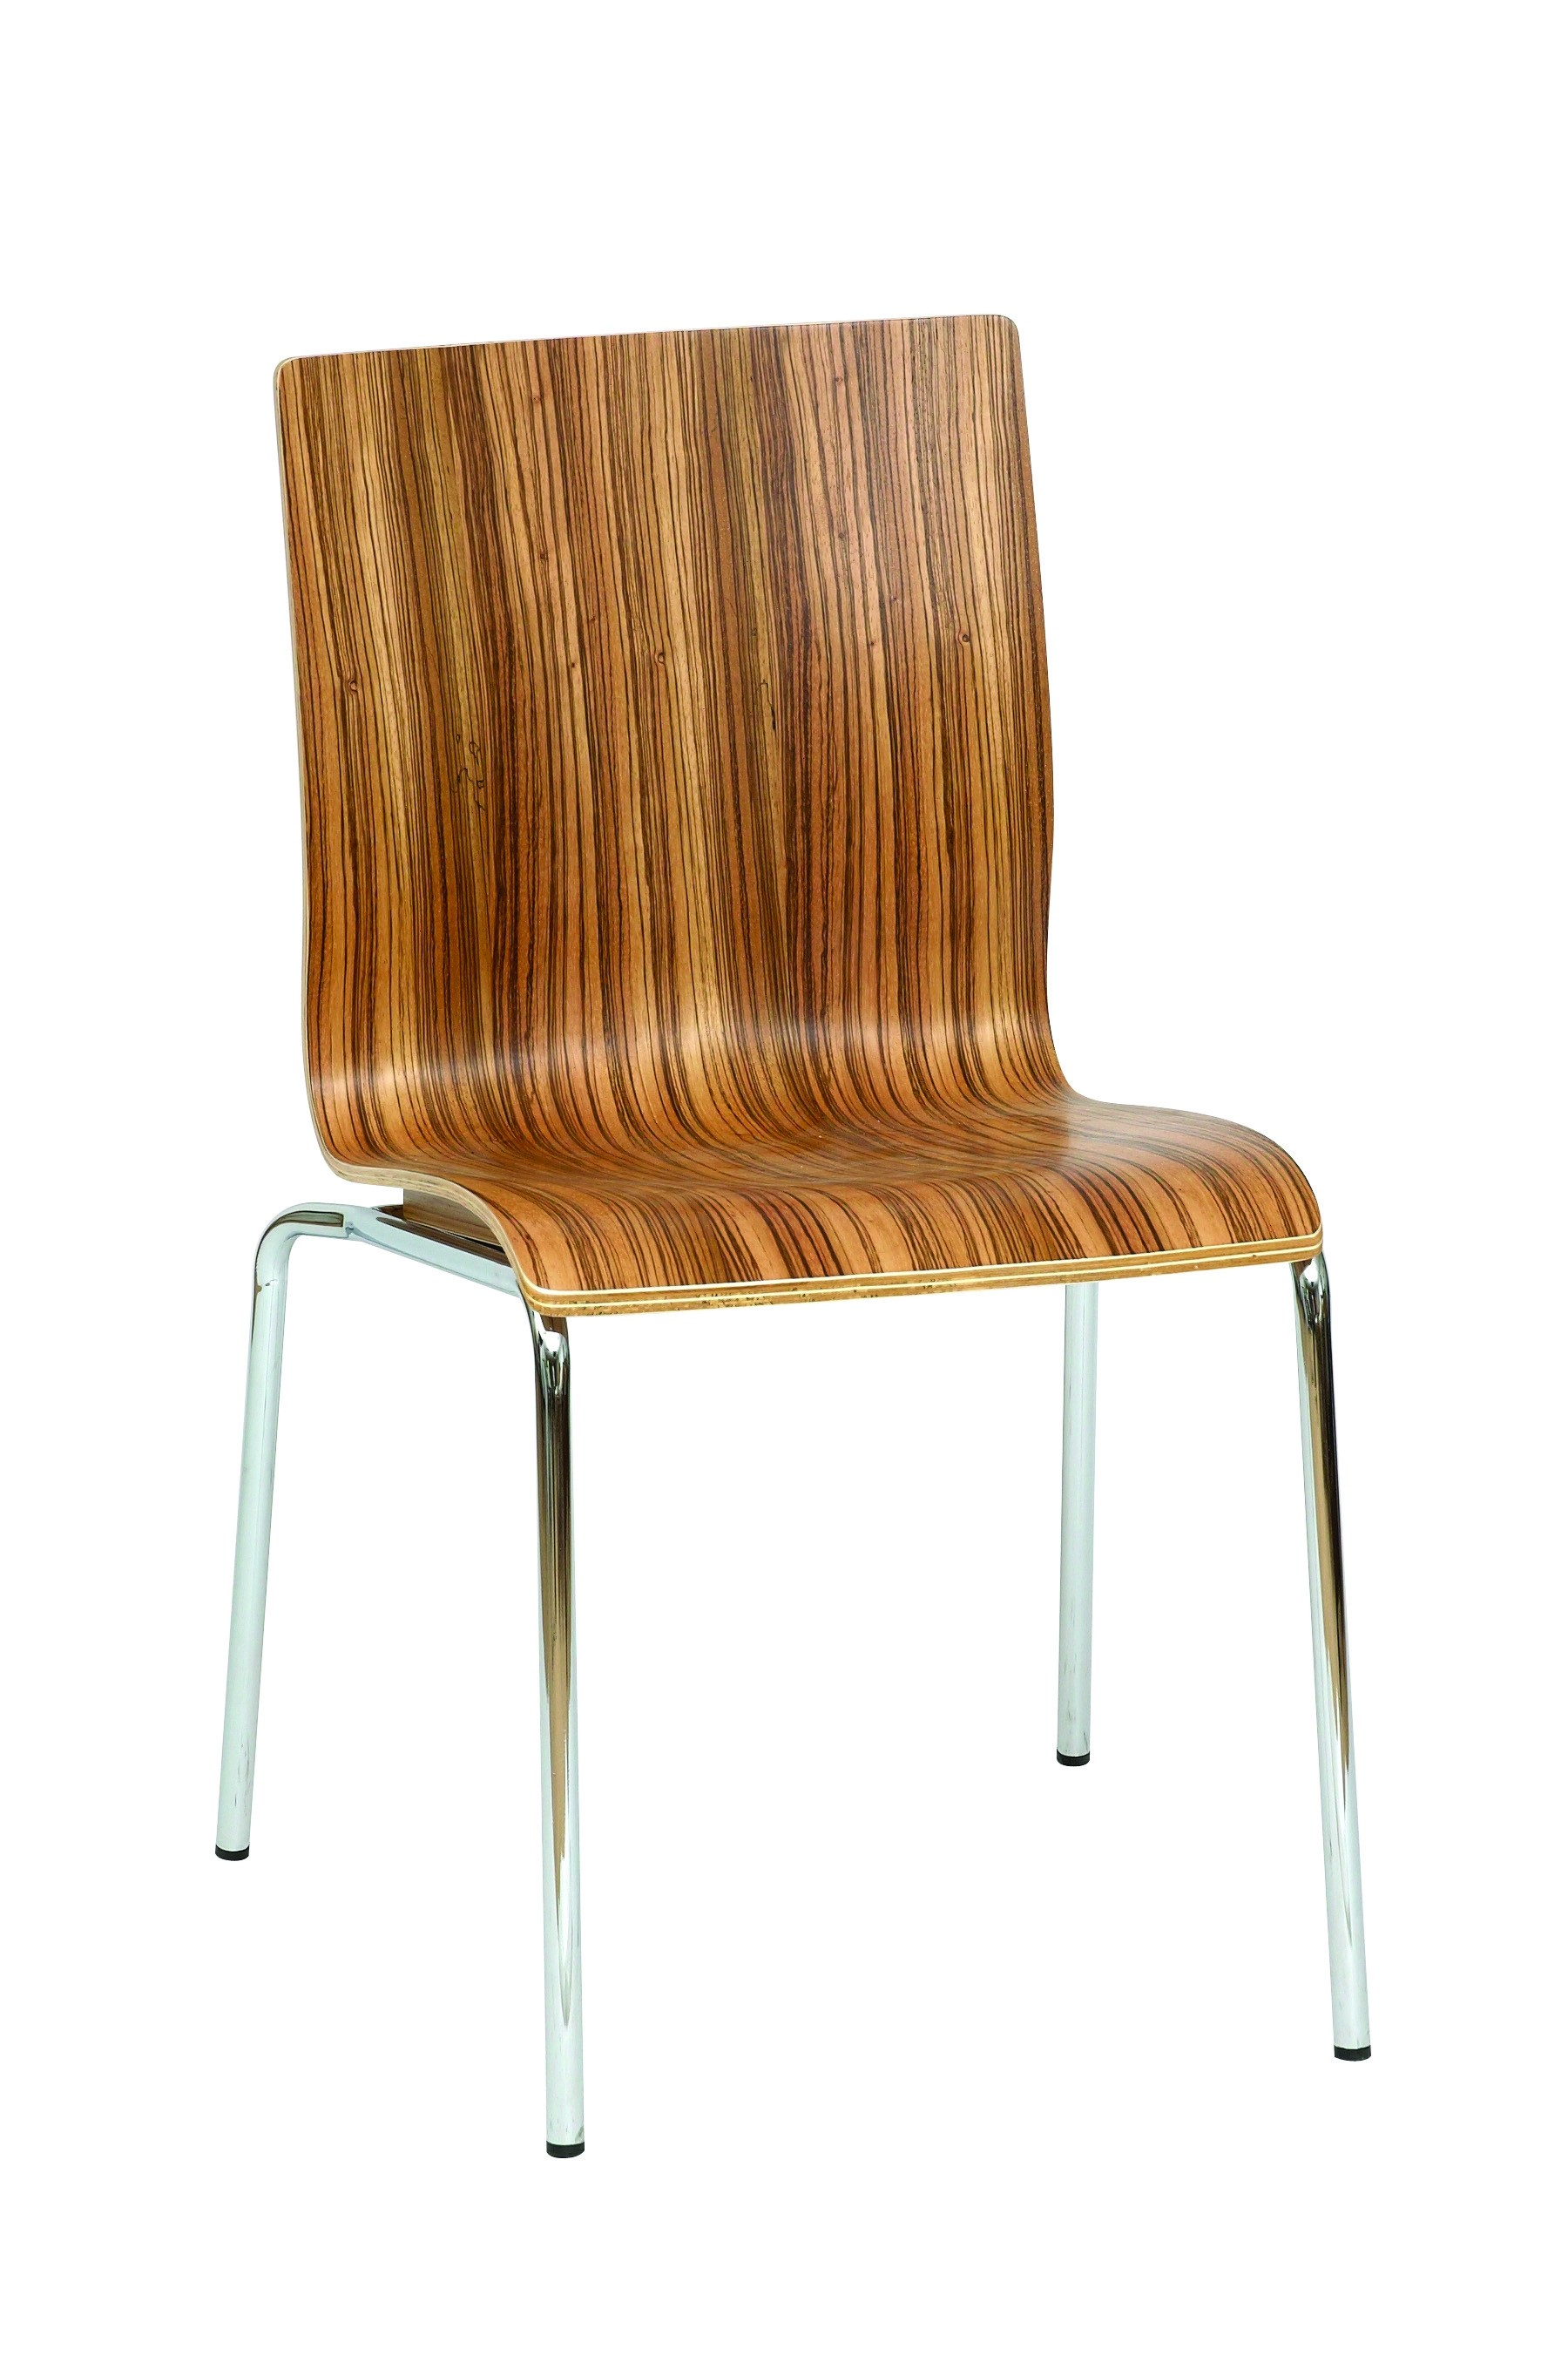 HALE A SIDE CHAIR